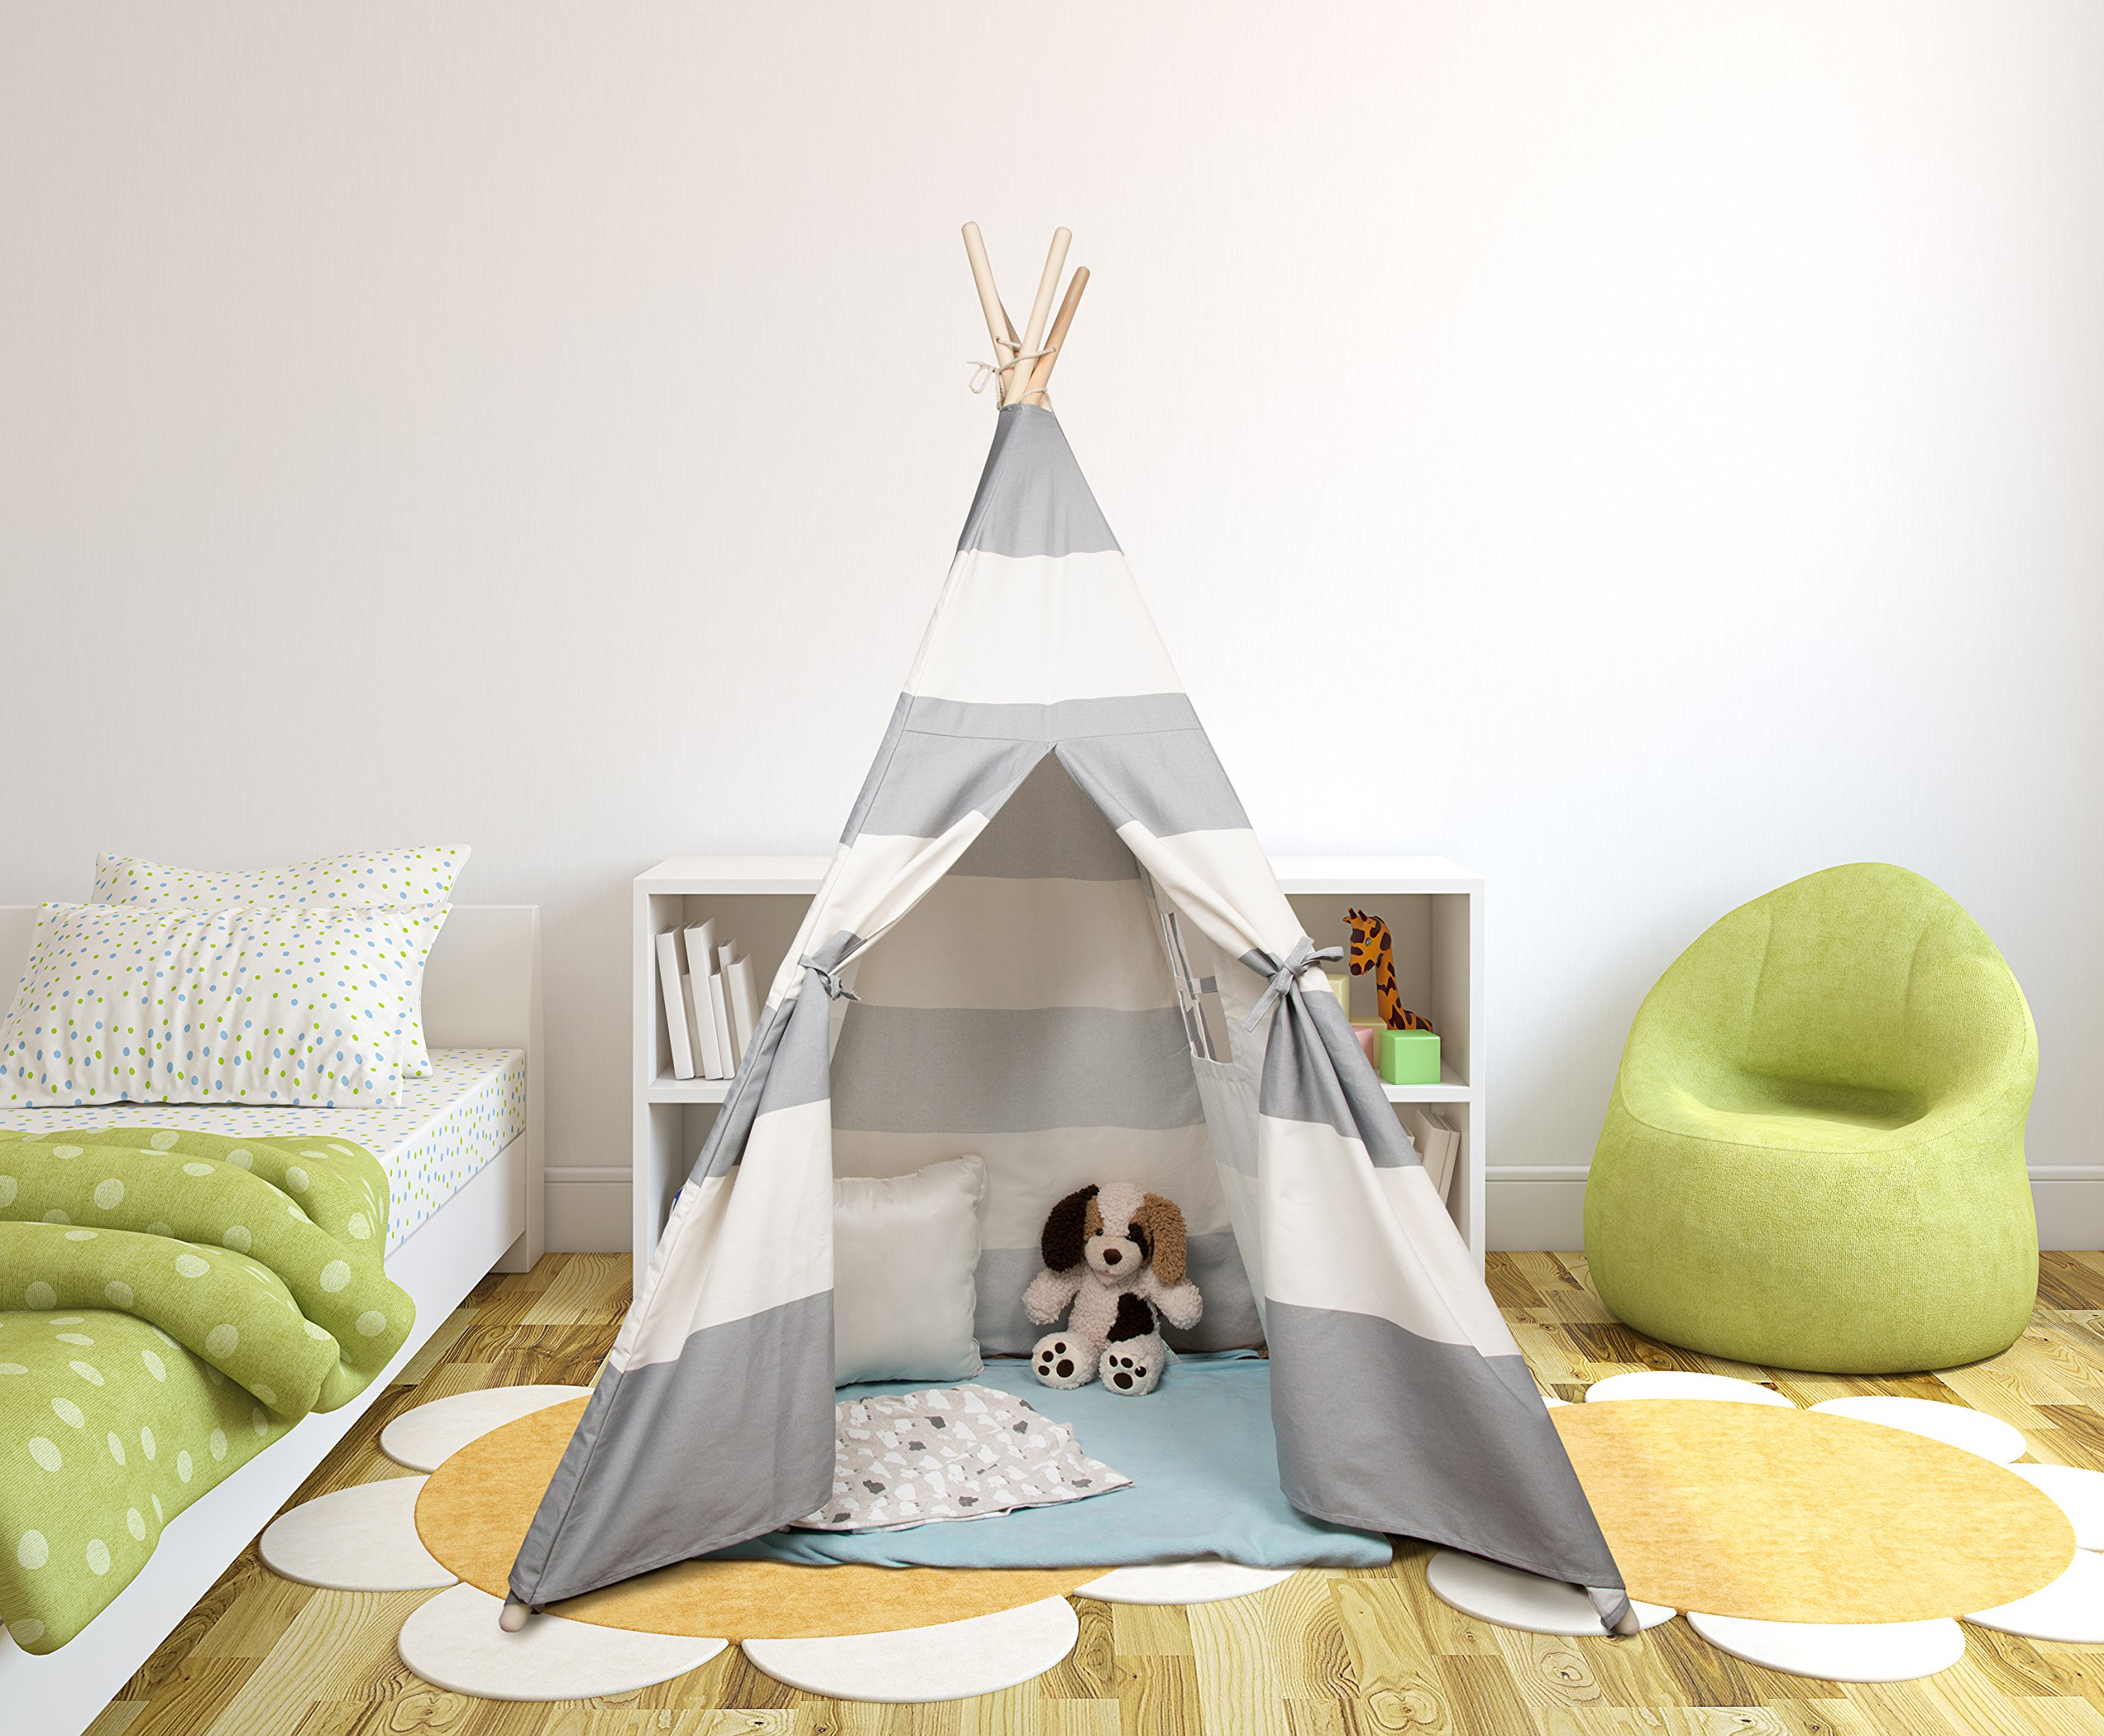 Made of Durable Cotton w Pine Wood Frame Foldable Playhouse for Indoor Use 5 ft Tall Play Tent for Boys /& Girls Svan Kids Canvas Teepee Tent